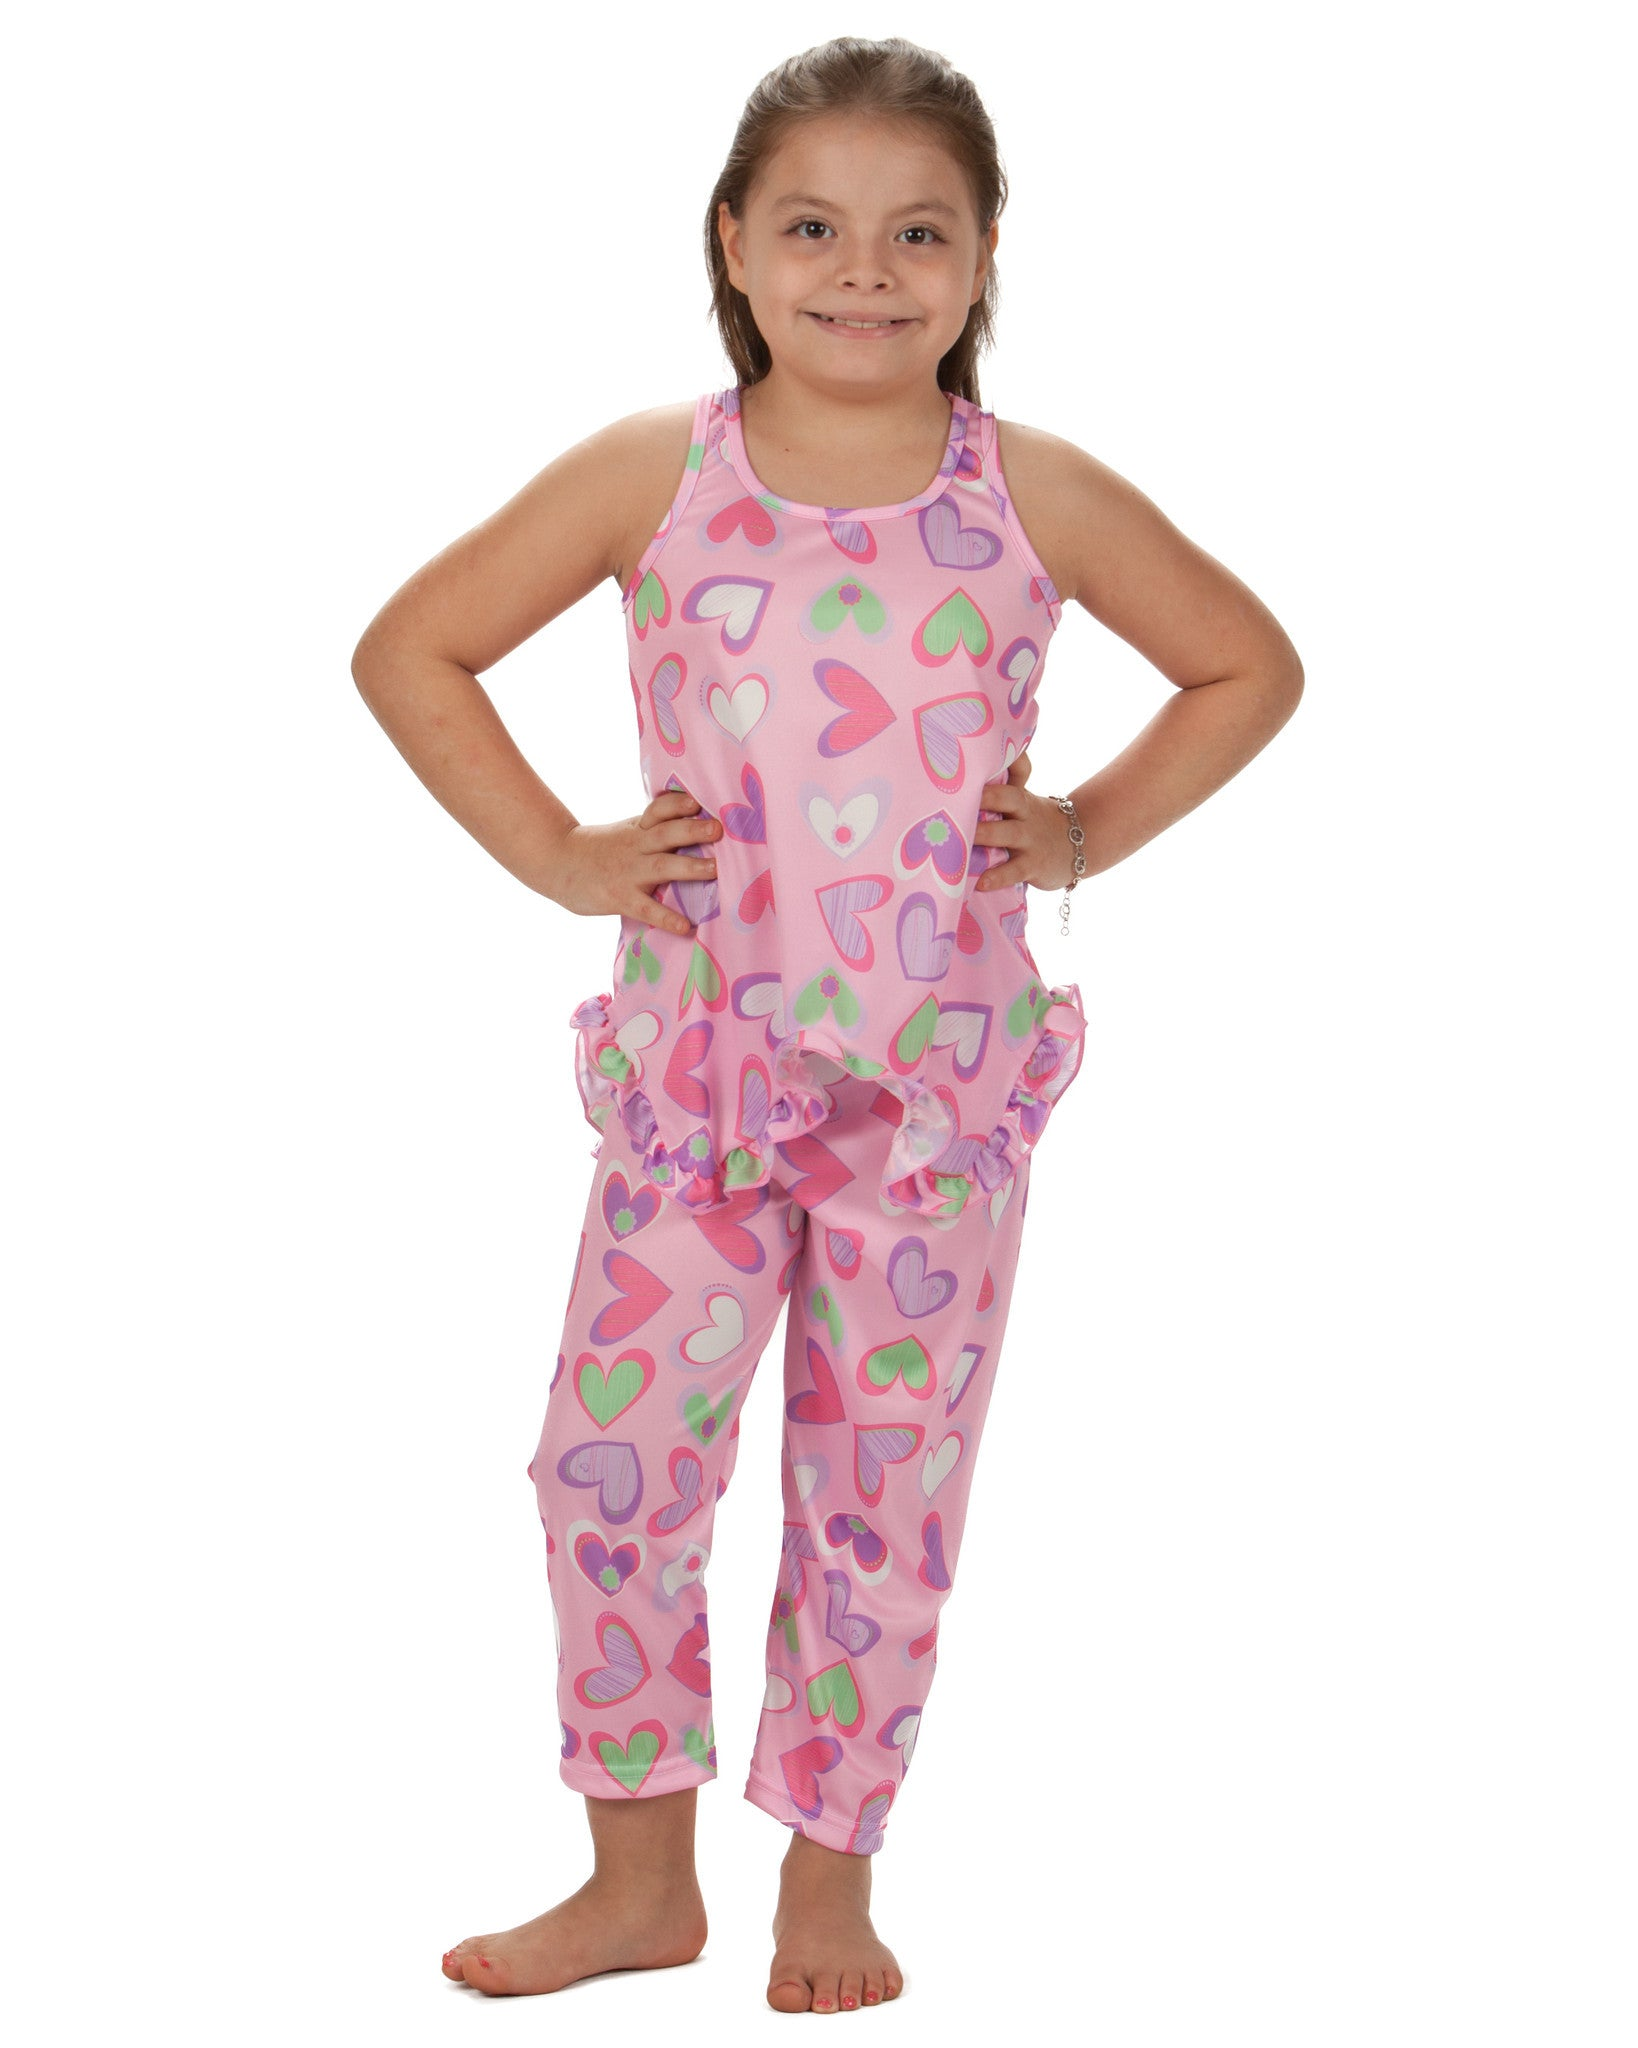 Laura Dare Heart To Heart Racerback Pajama (2T - 14)